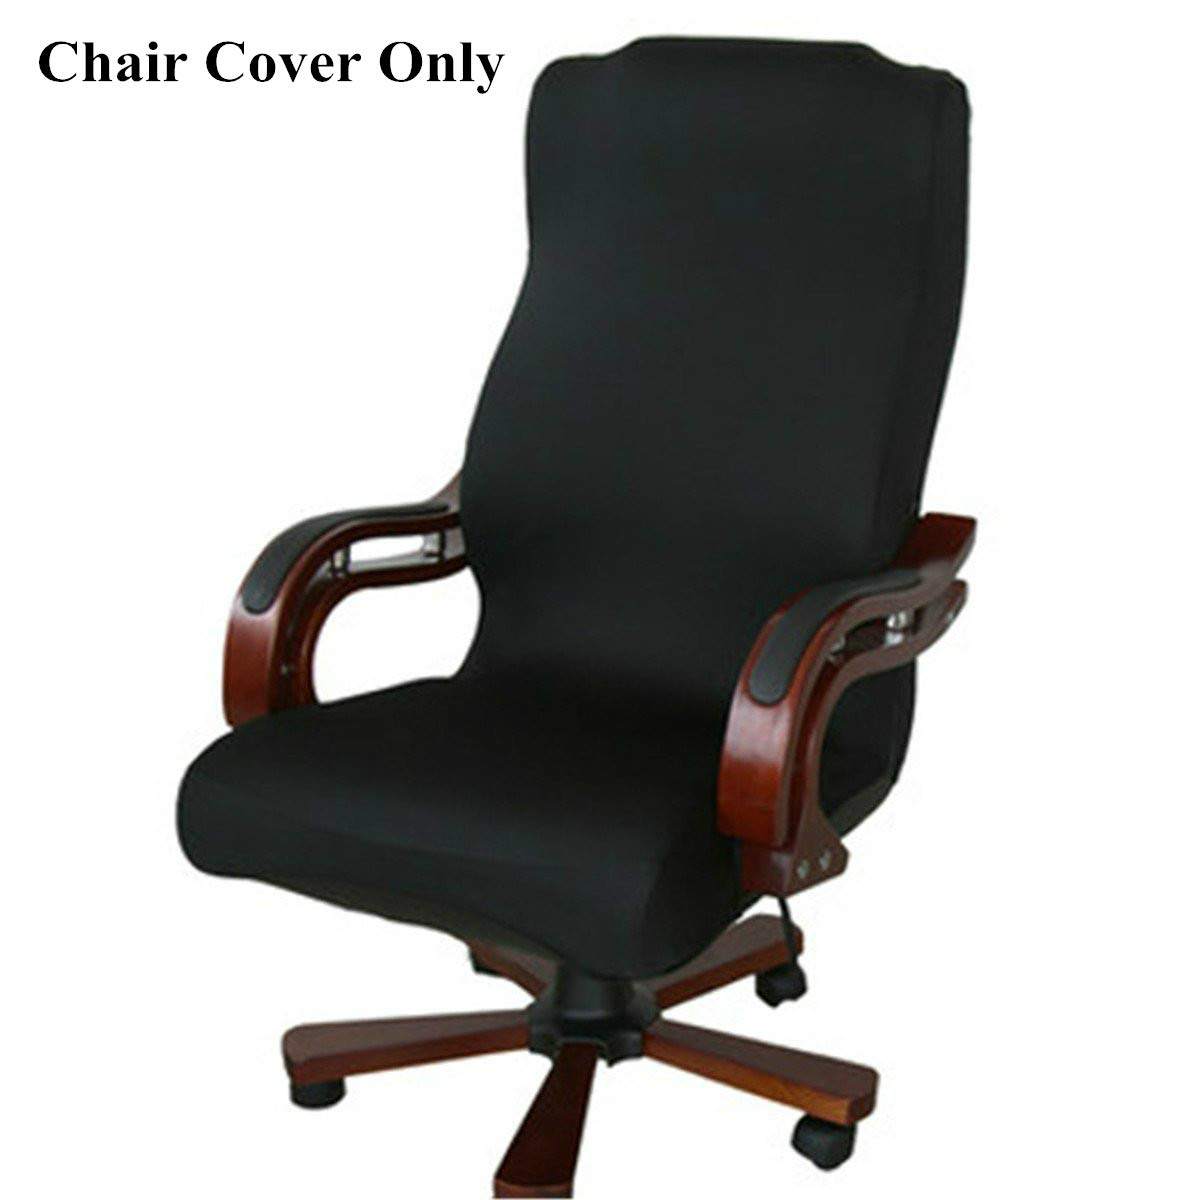 Caveen Office Chair Cover Computer Chair Universal Boss Chair Cover Modern Simplism Style High Back Large Size (Chair not included) black large